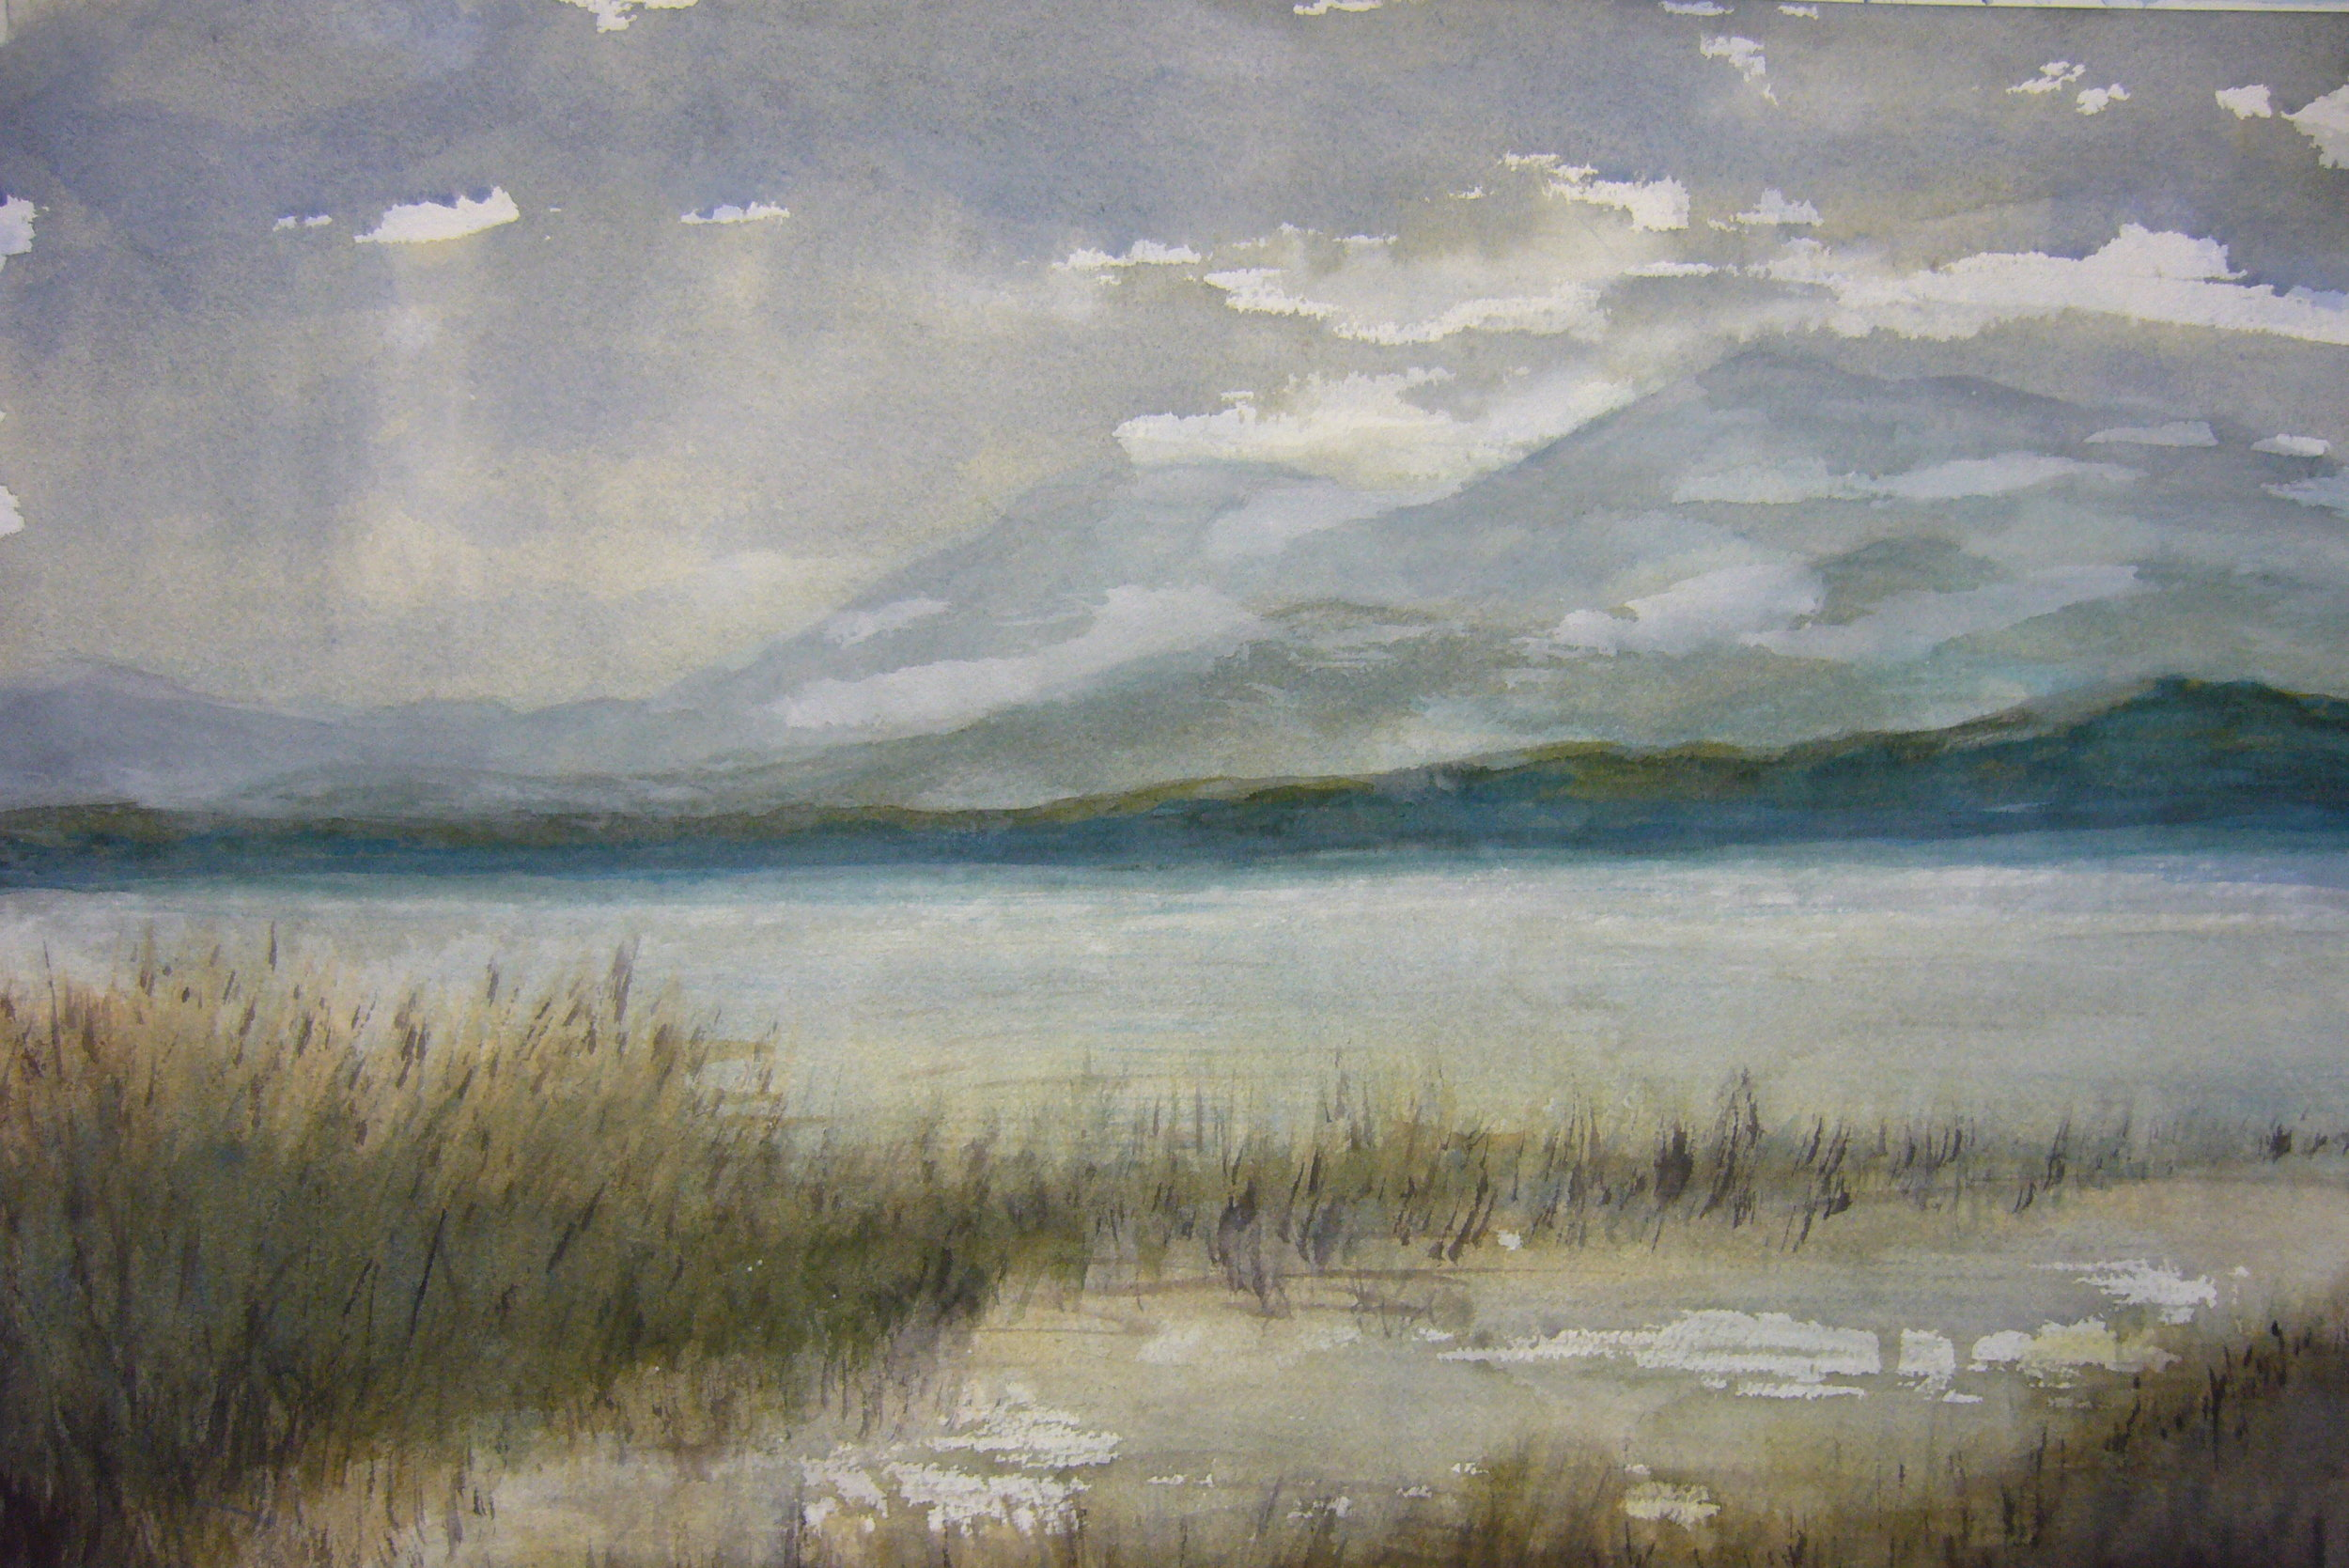 Mt. Diablo from Benicia   Watercolor  15 x 22  2013  Private Collection